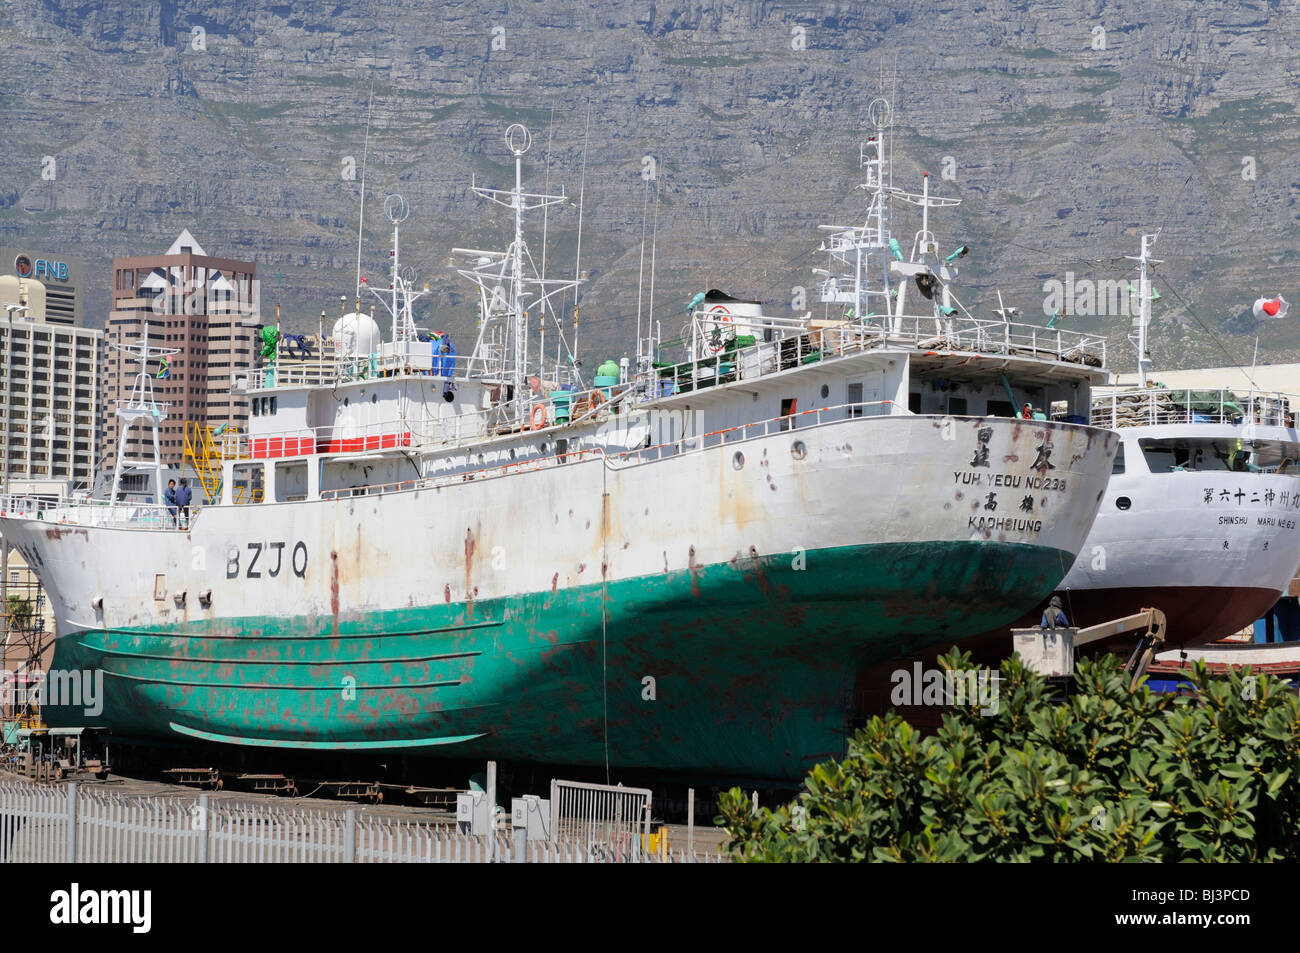 Ships in dry dock, Cape Town, Western Cape, South Africa, Africa - Stock Image